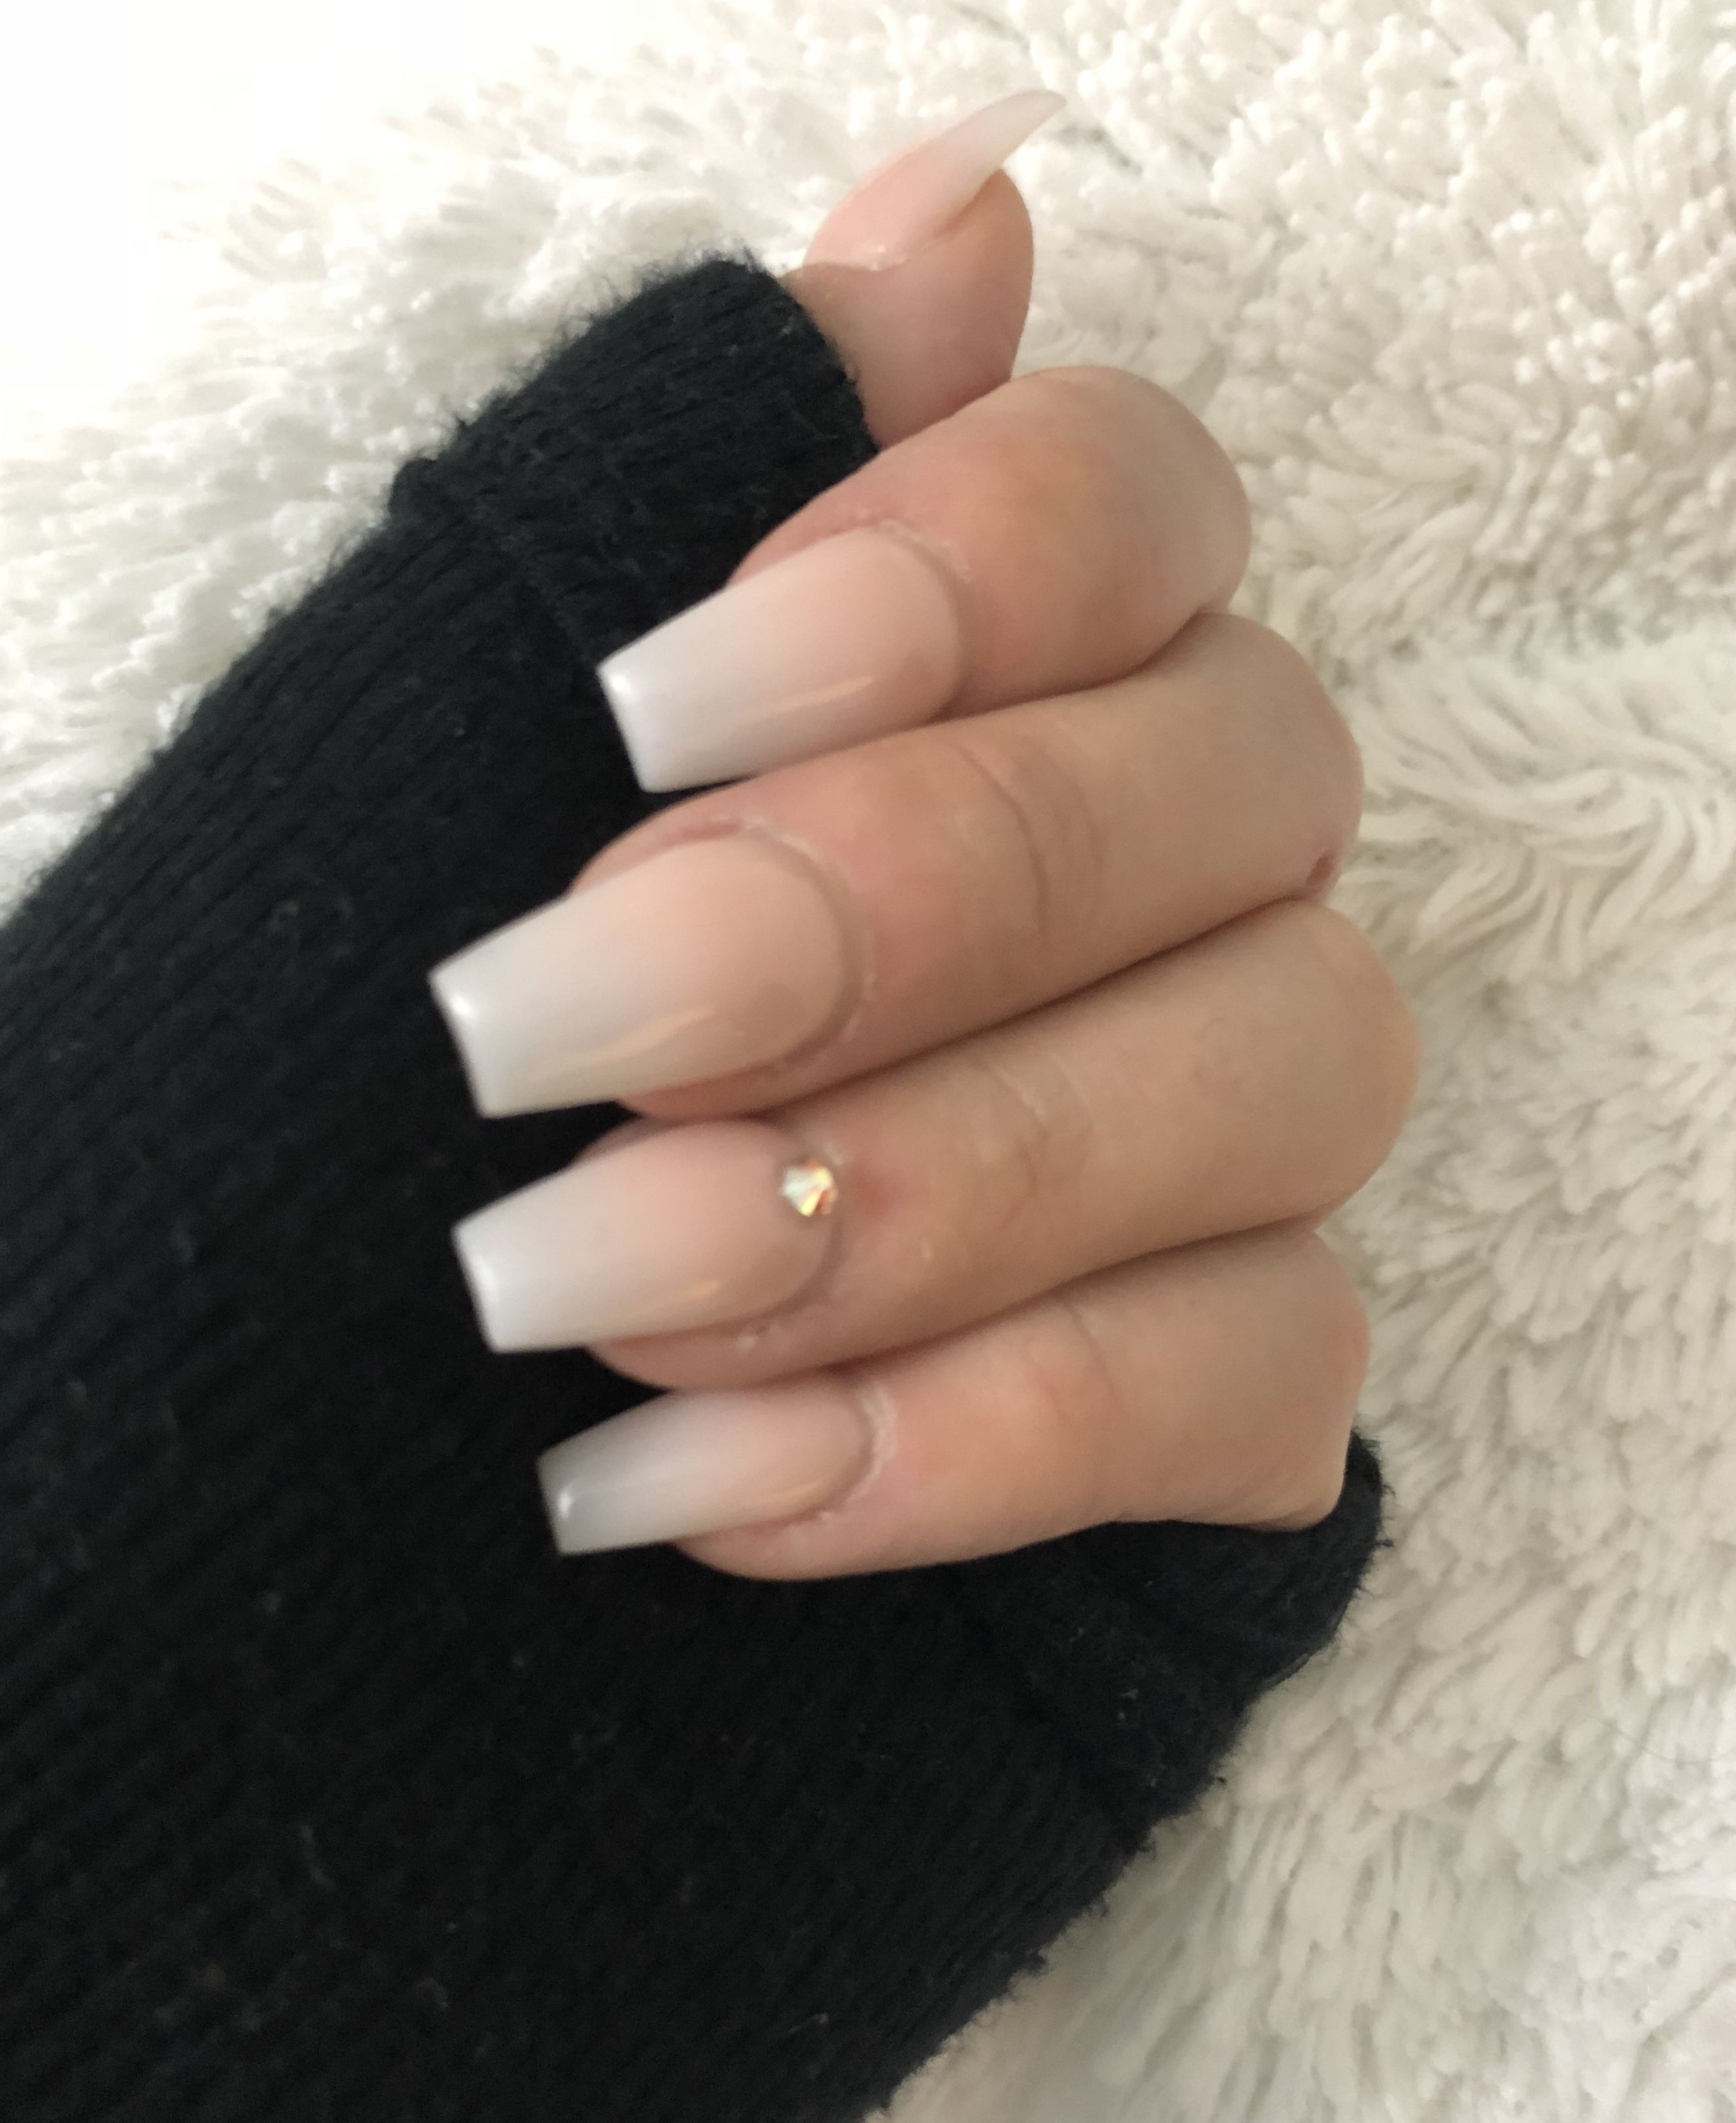 89 The Best Natural Ombre Nails Manicure Ideas You Must Try 57 Elroystores Com Cute Acrylic Nails Simple Acrylic Nails Faded Nails